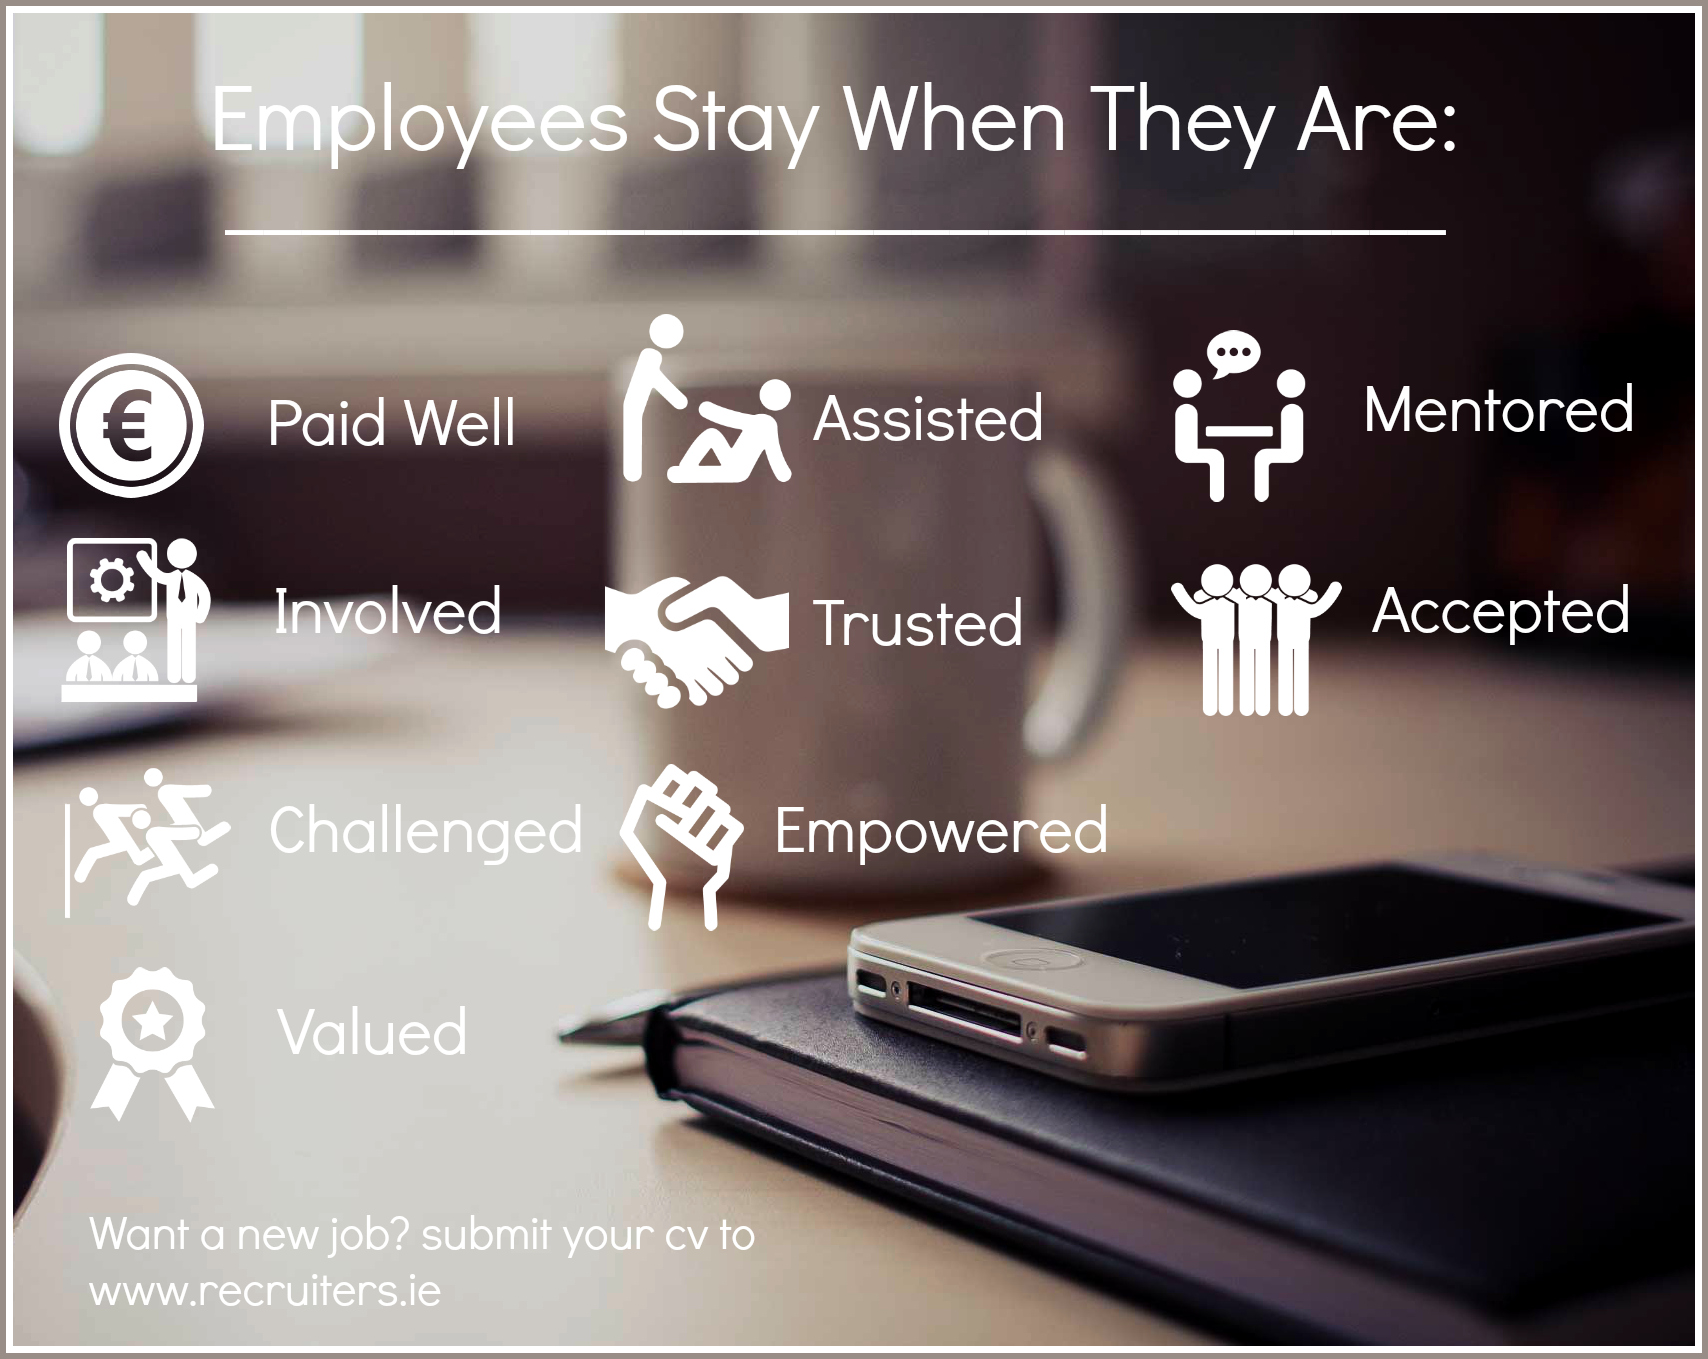 Image listing reasons employees stay with a company